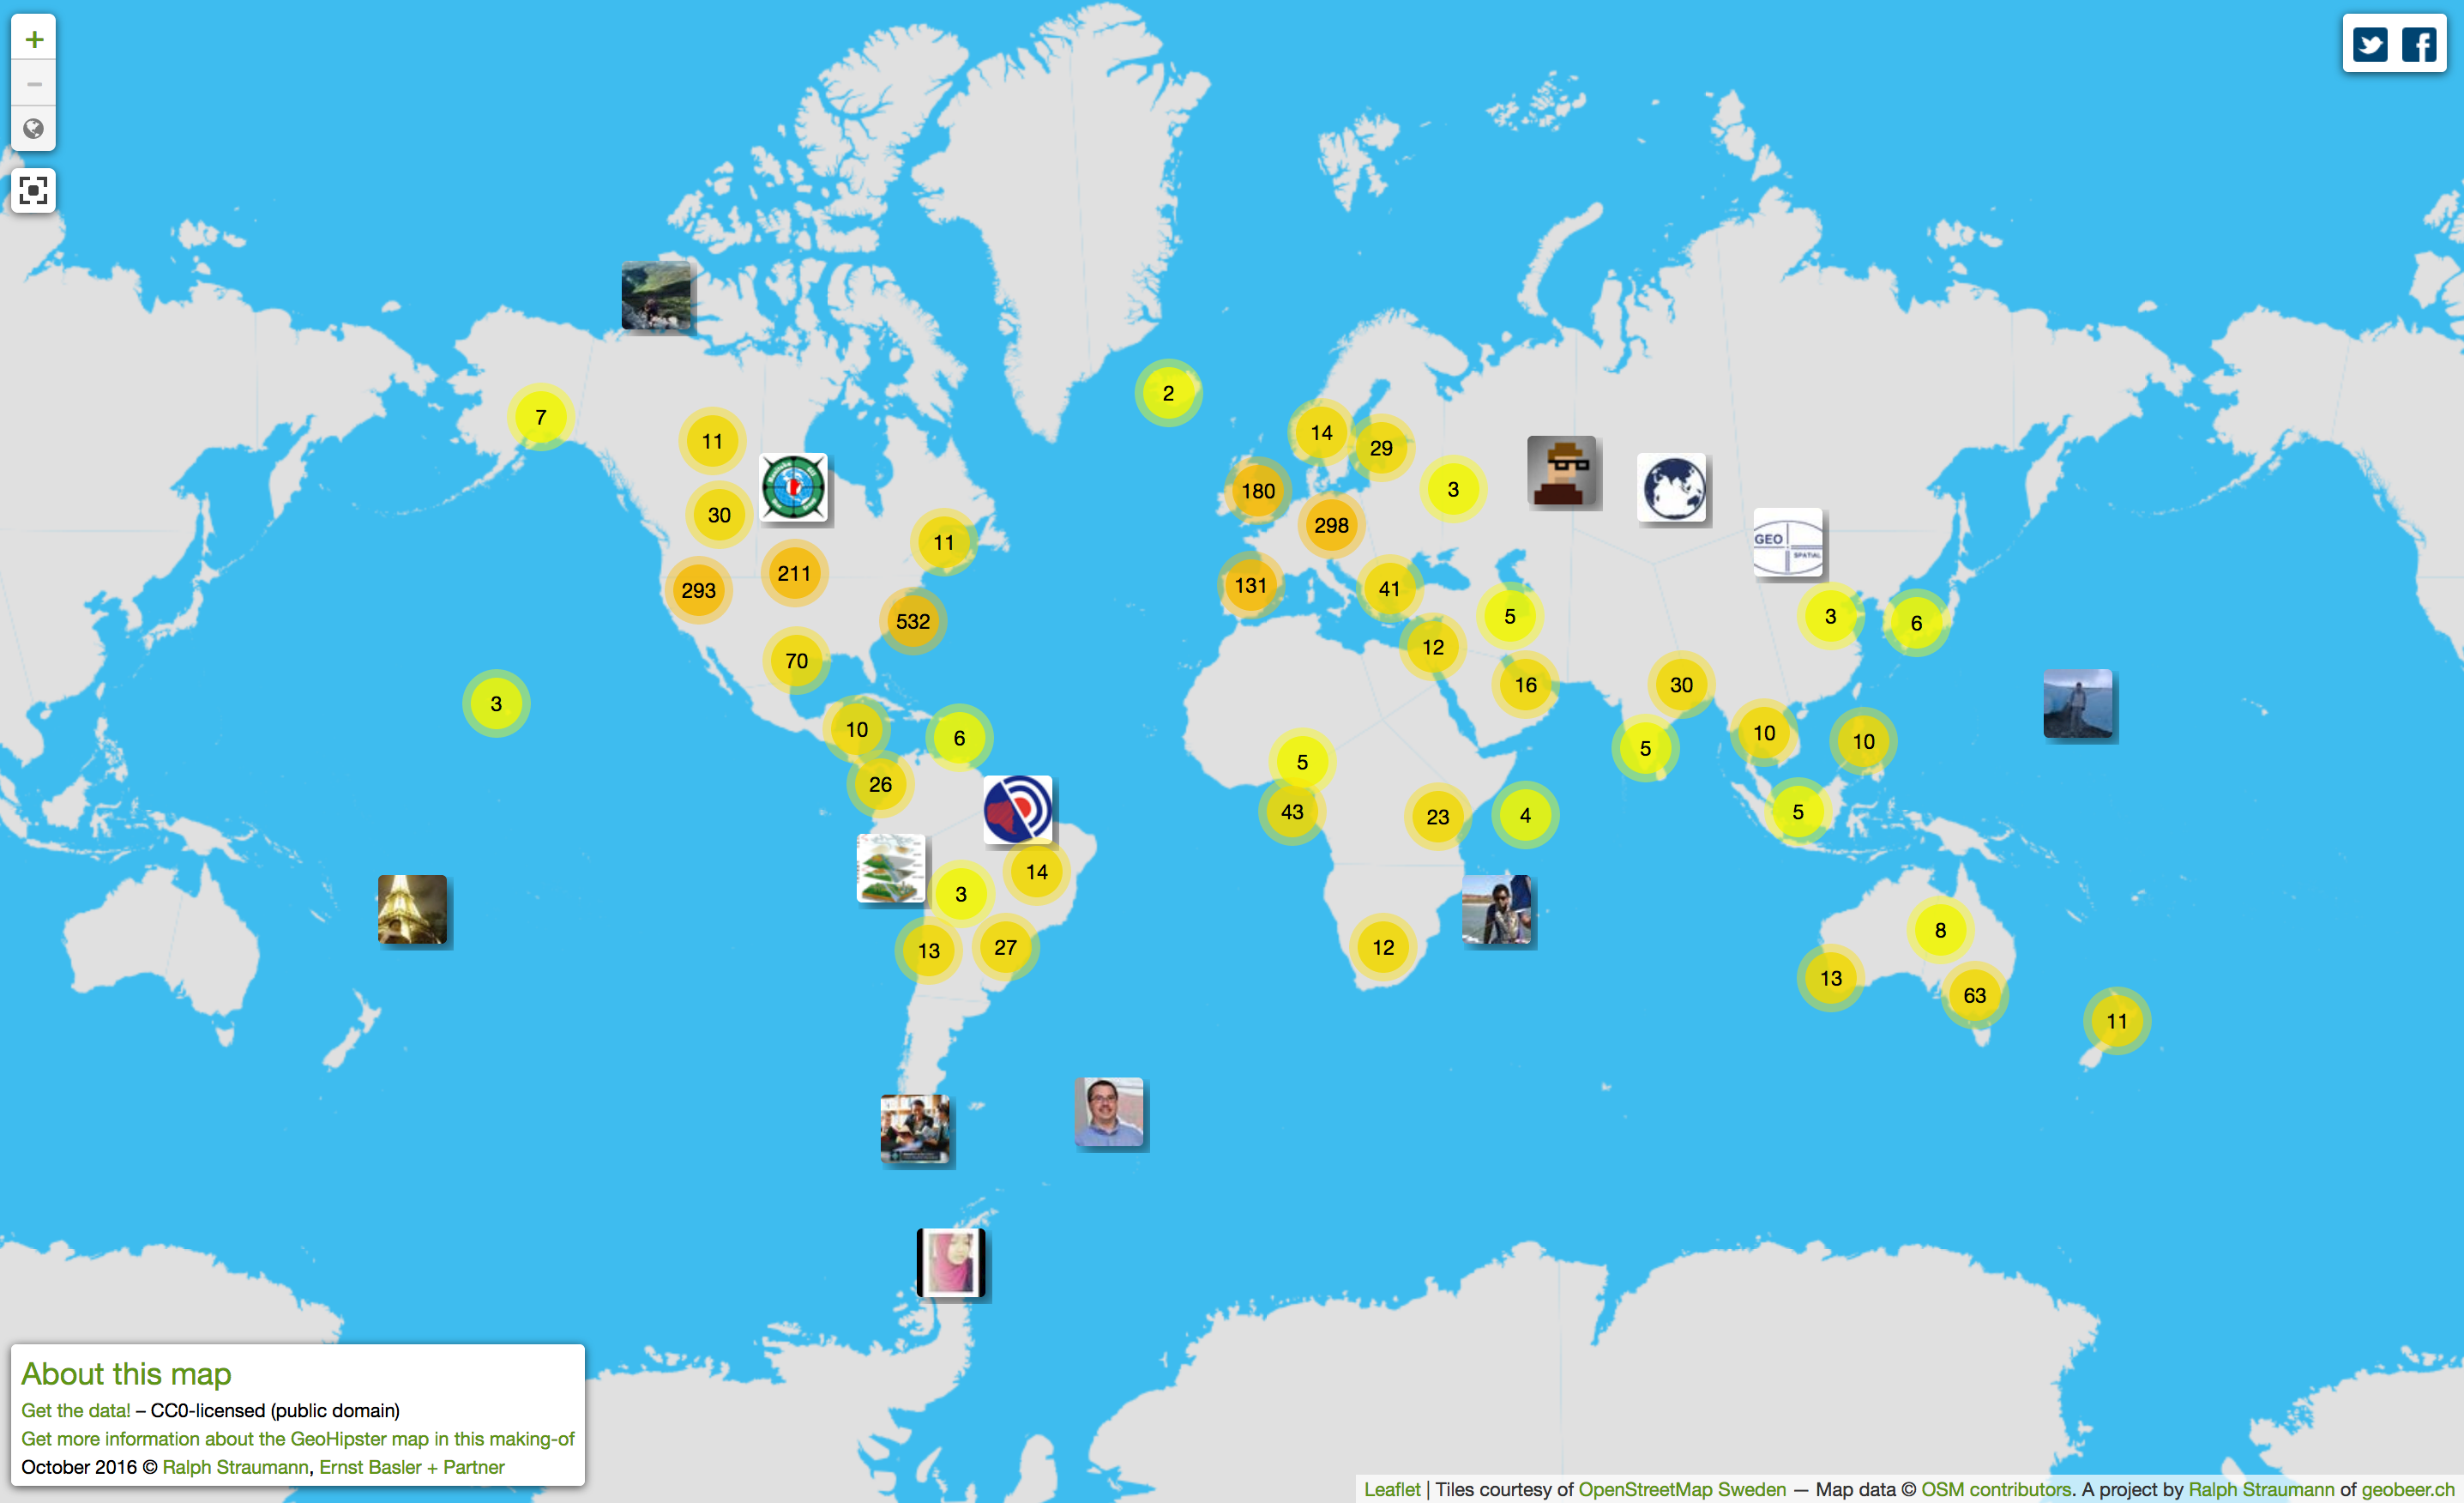 Updated global GeoHipster map